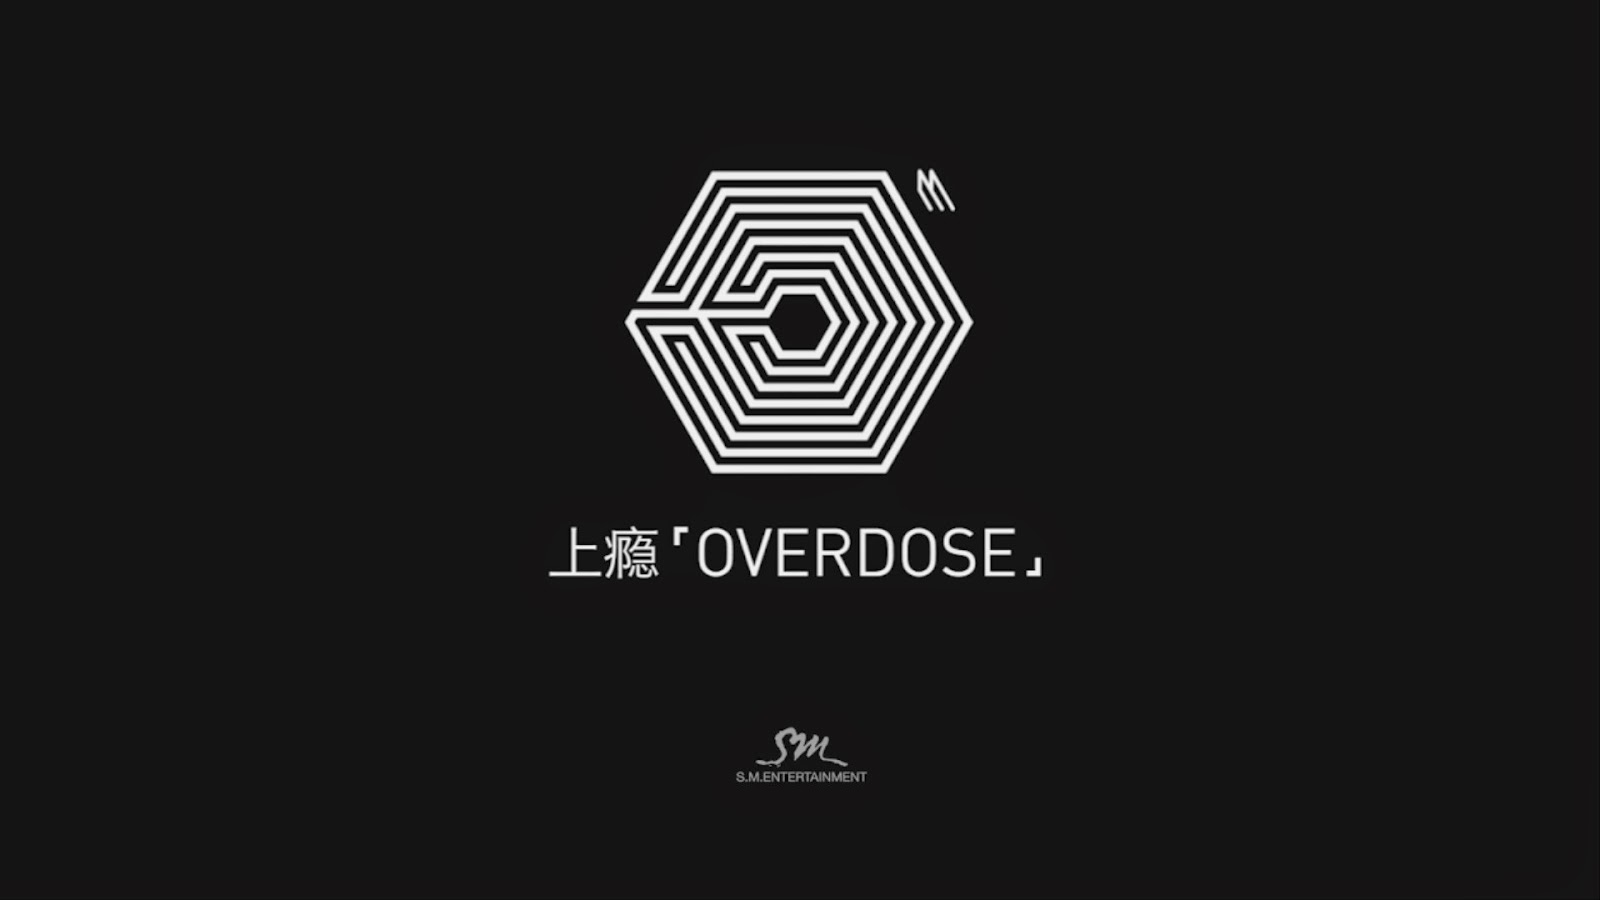 Download 2nd Mini Album EXO M – Overdose maxresdefaultexo m+logo